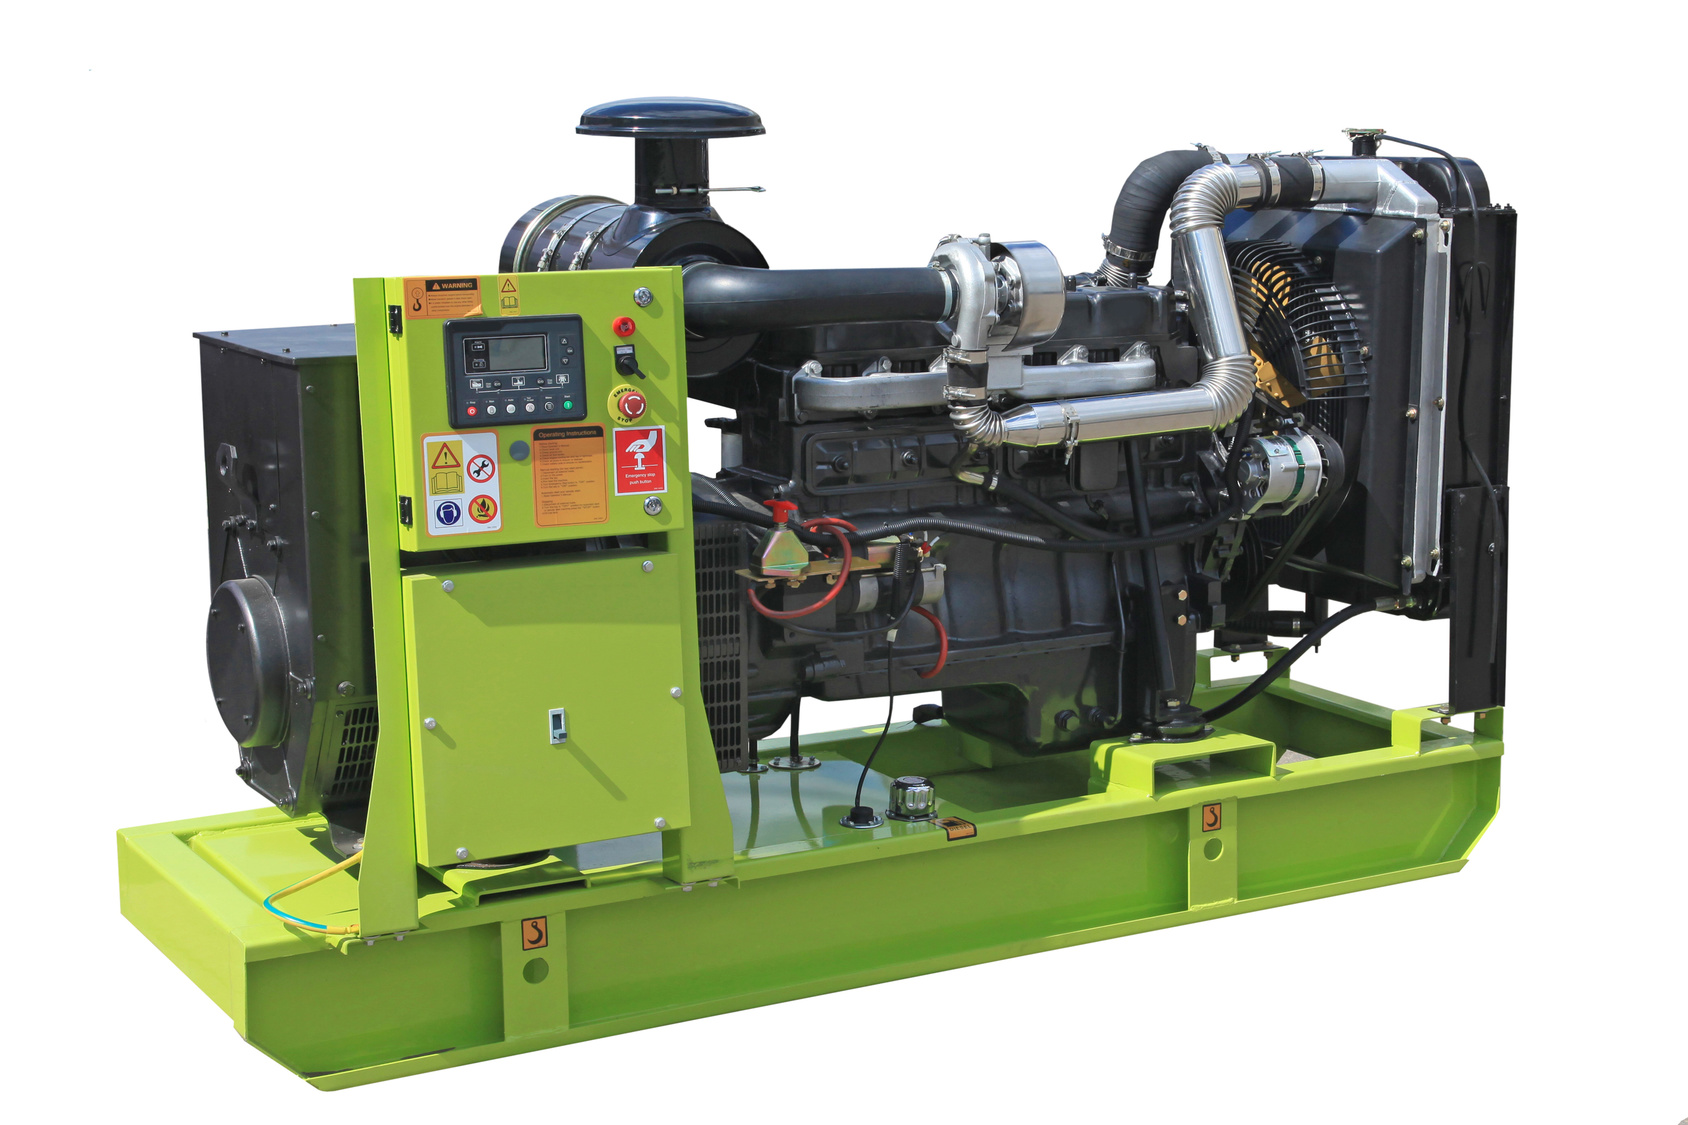 5 Safety Tips for Operating Industrial Generator Sets